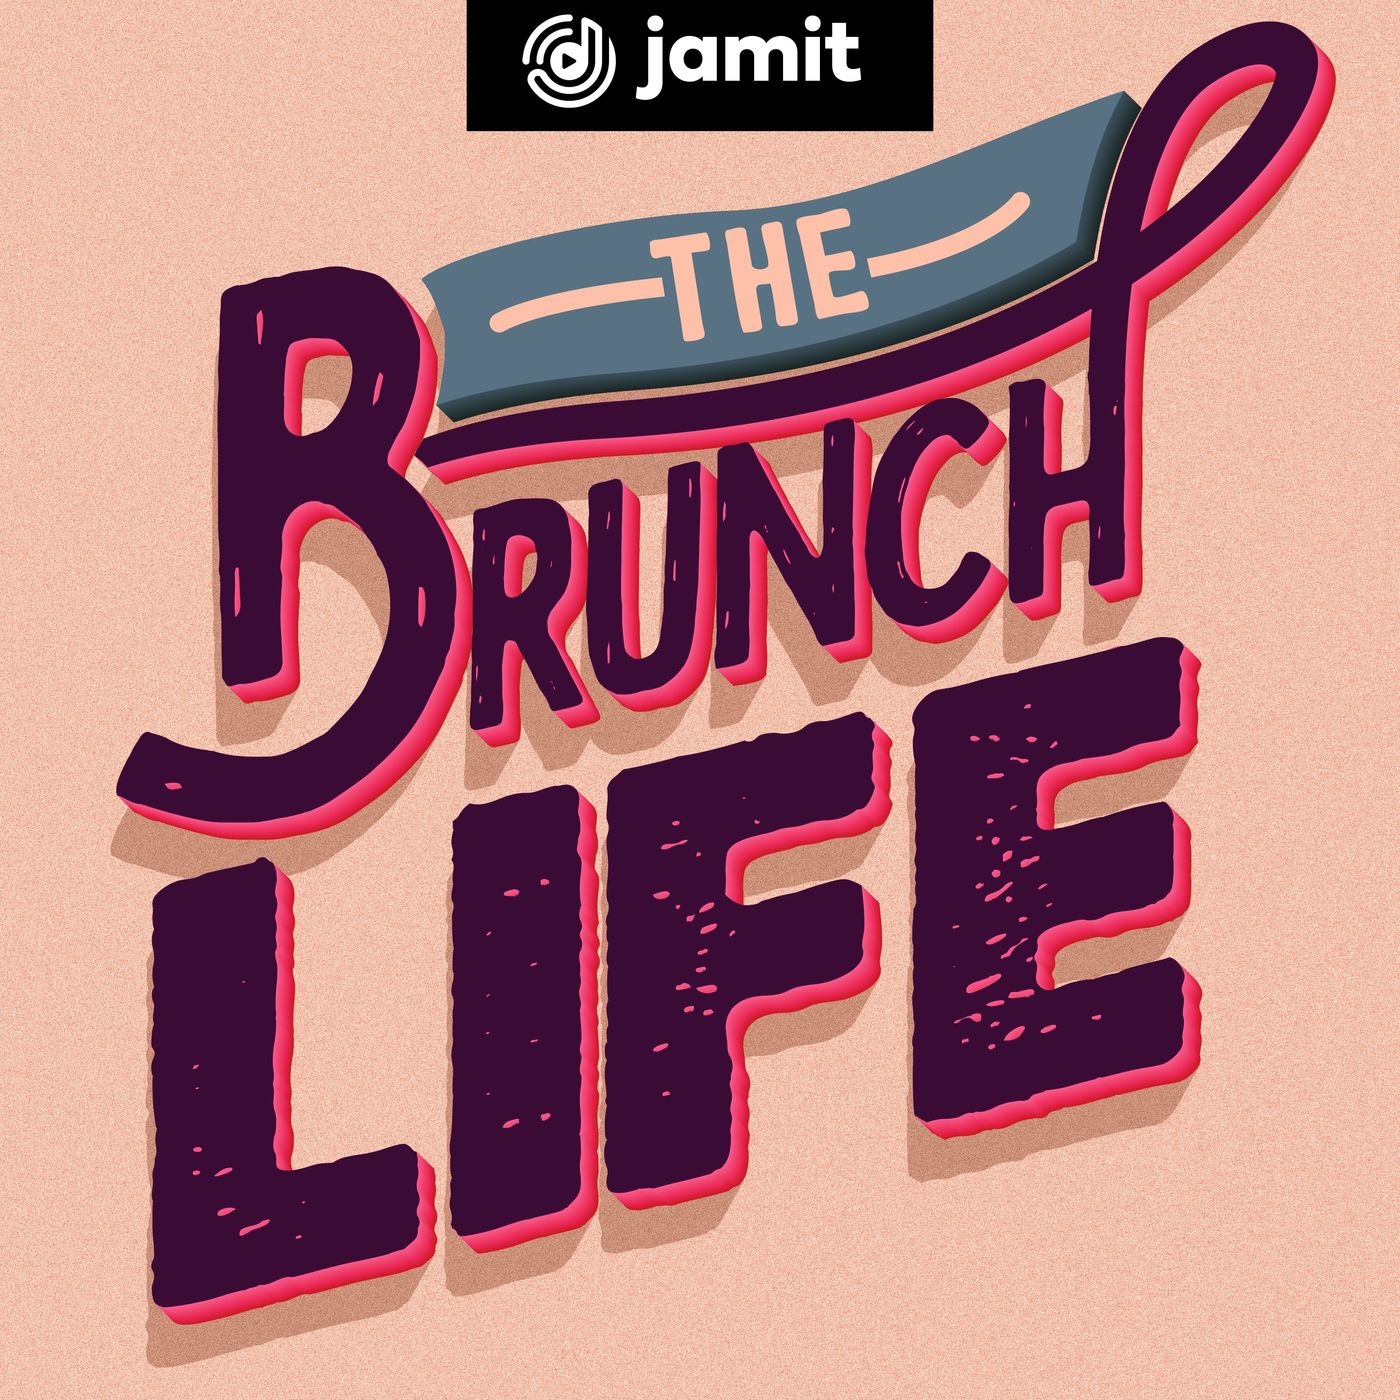 The Brunch Life on Jamit